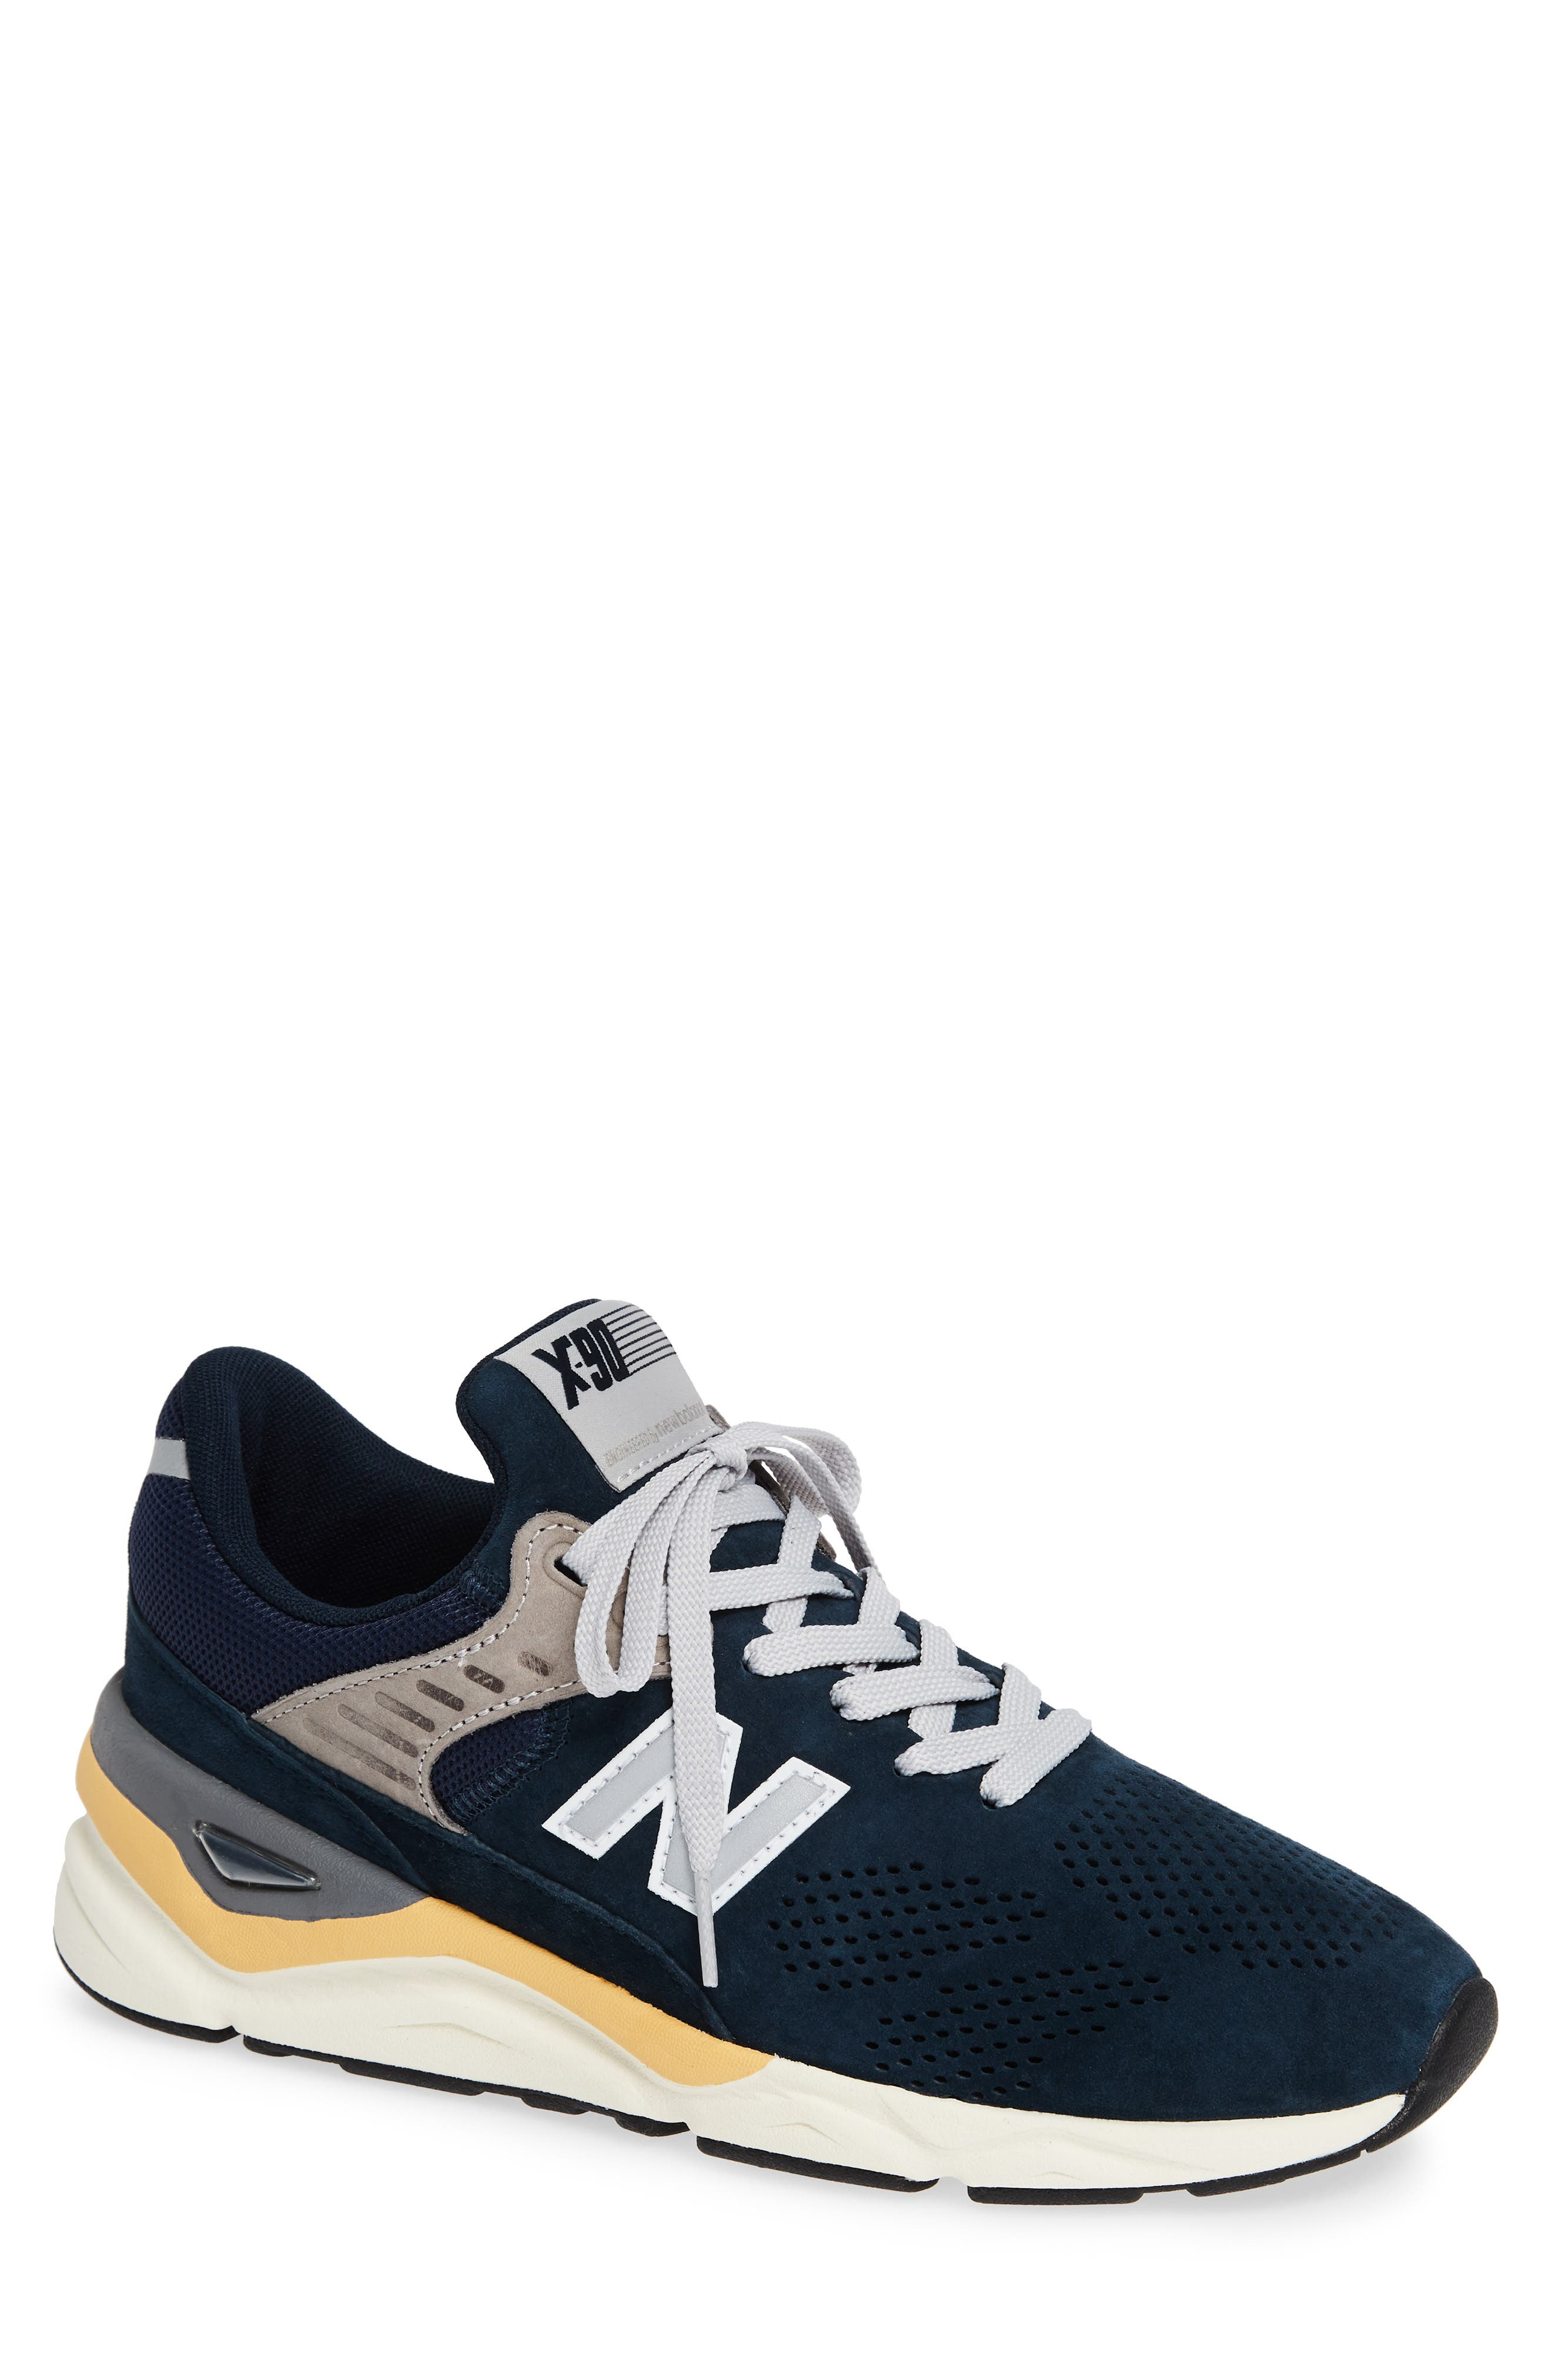 X-90 Leather Sneaker,                             Main thumbnail 1, color,                             NAVY SUEDE